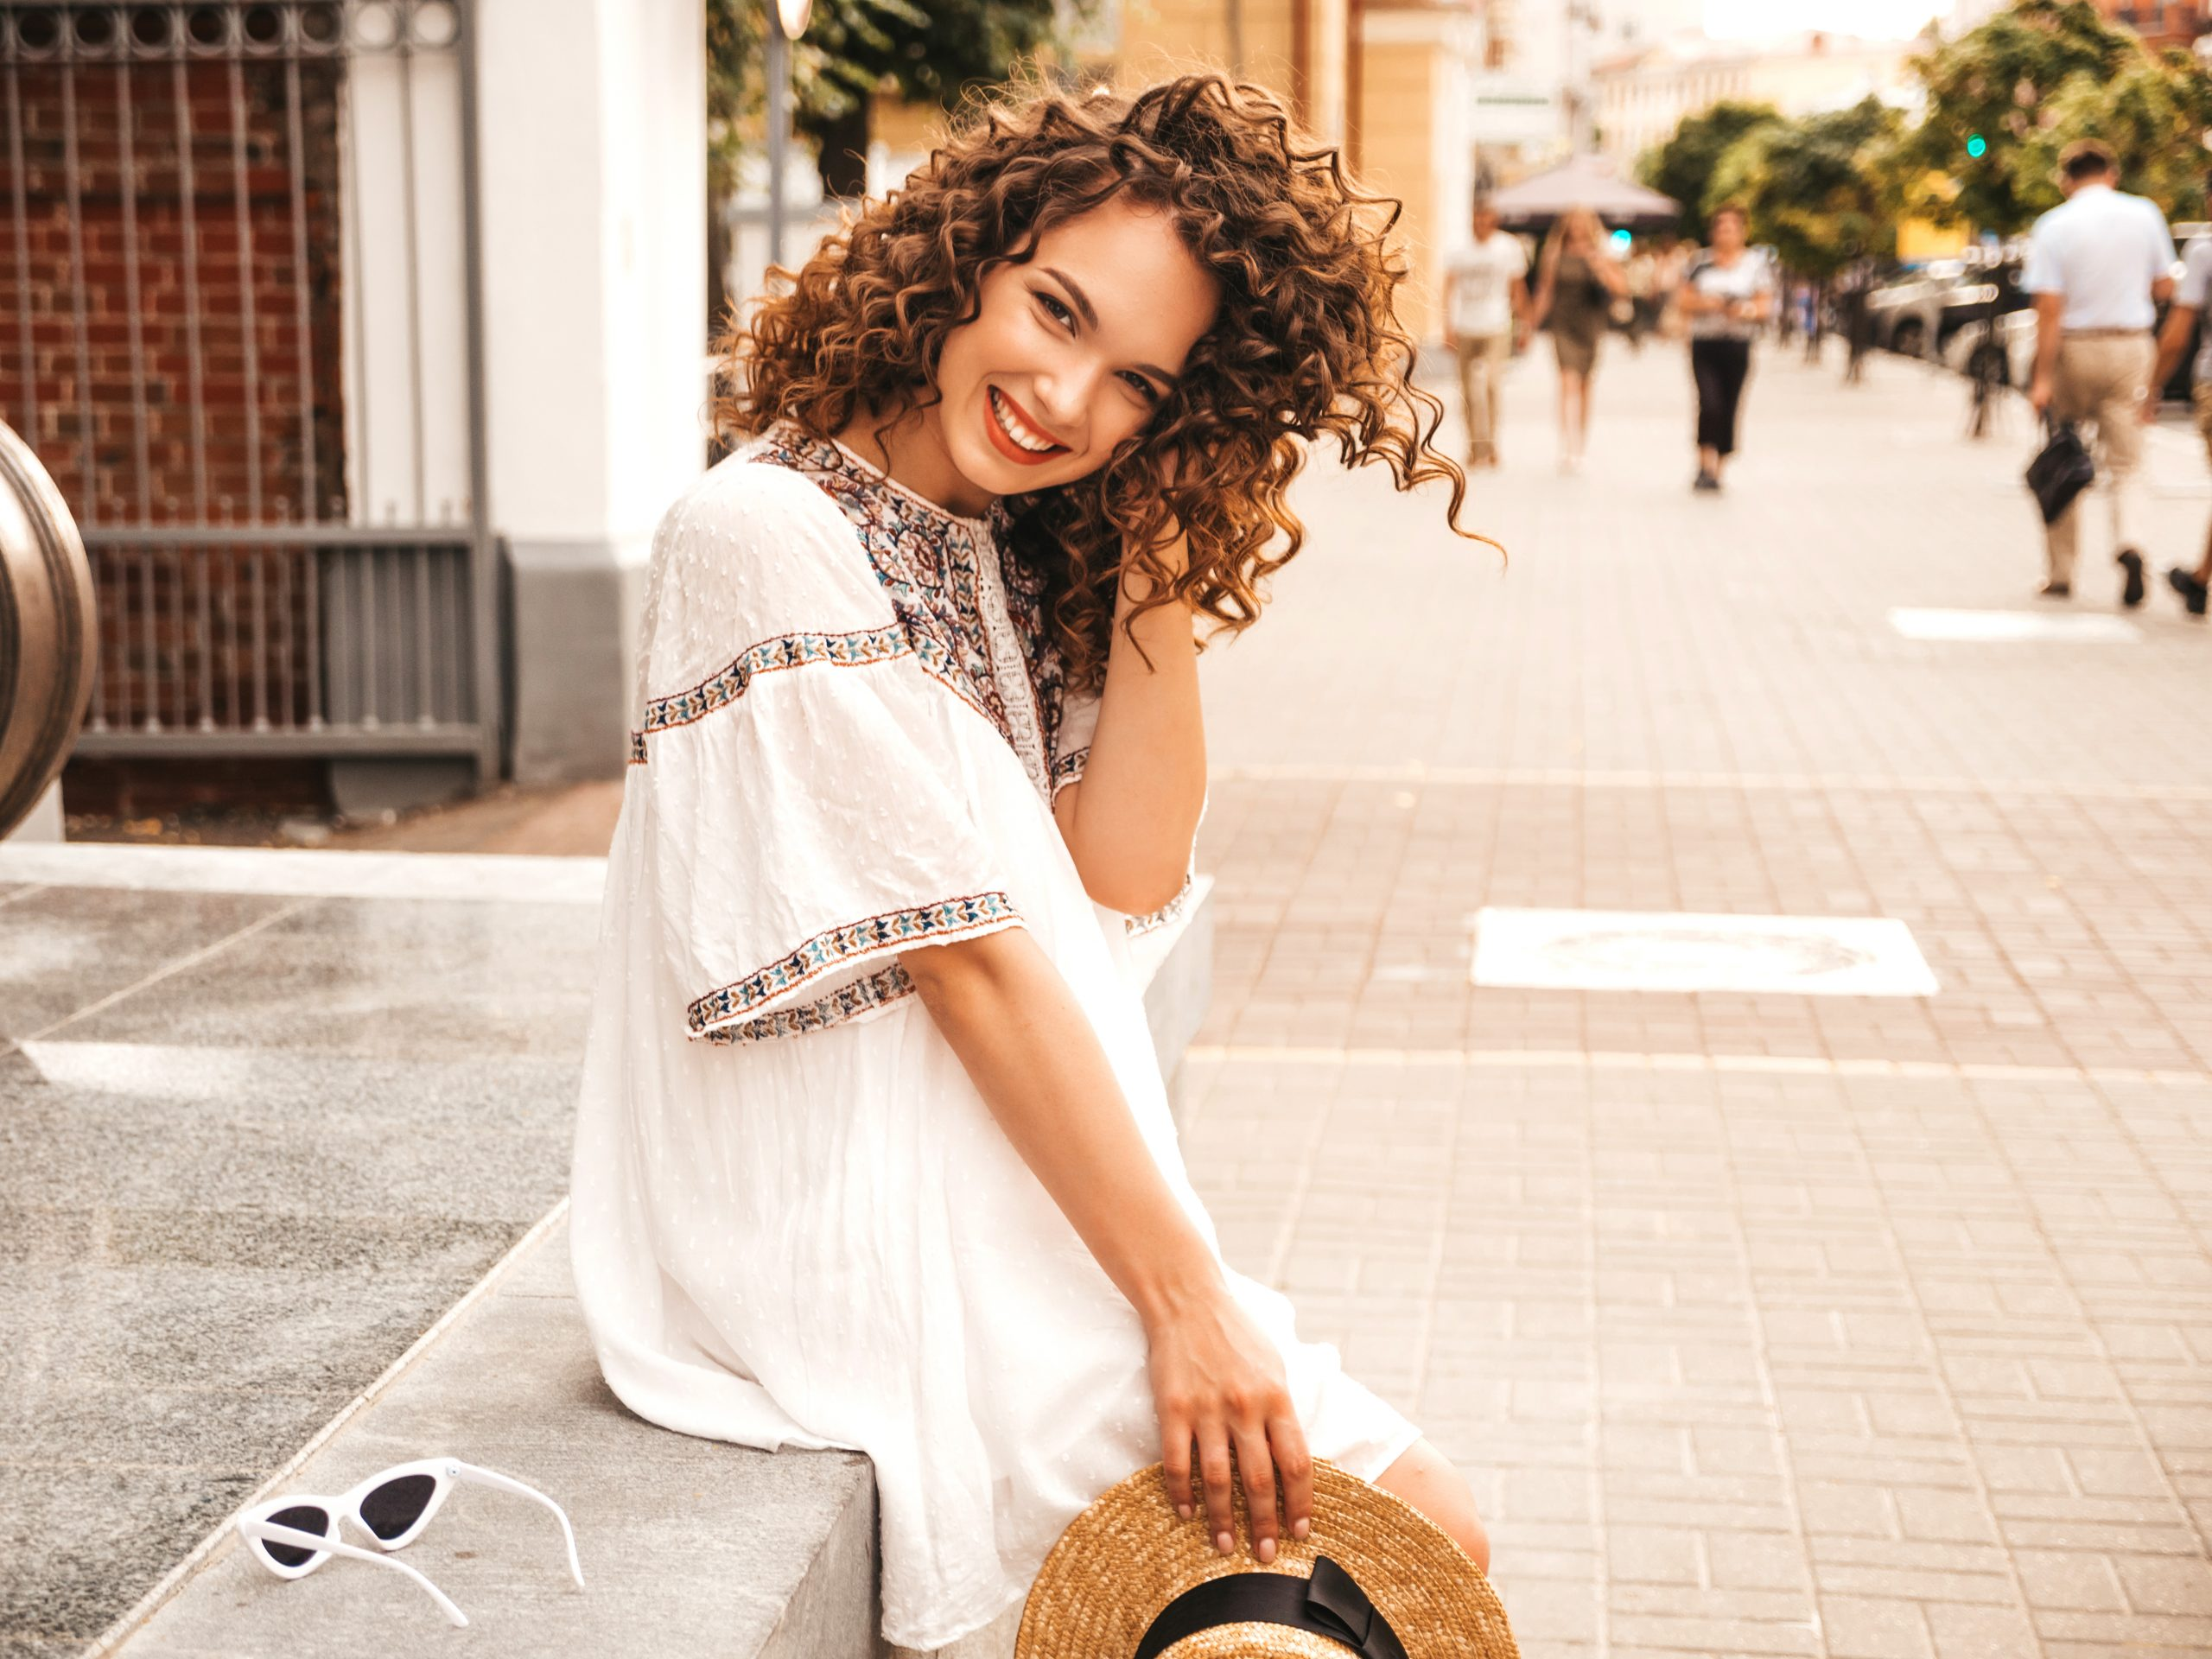 Beautiful smiling girl with afro curls hairstyle